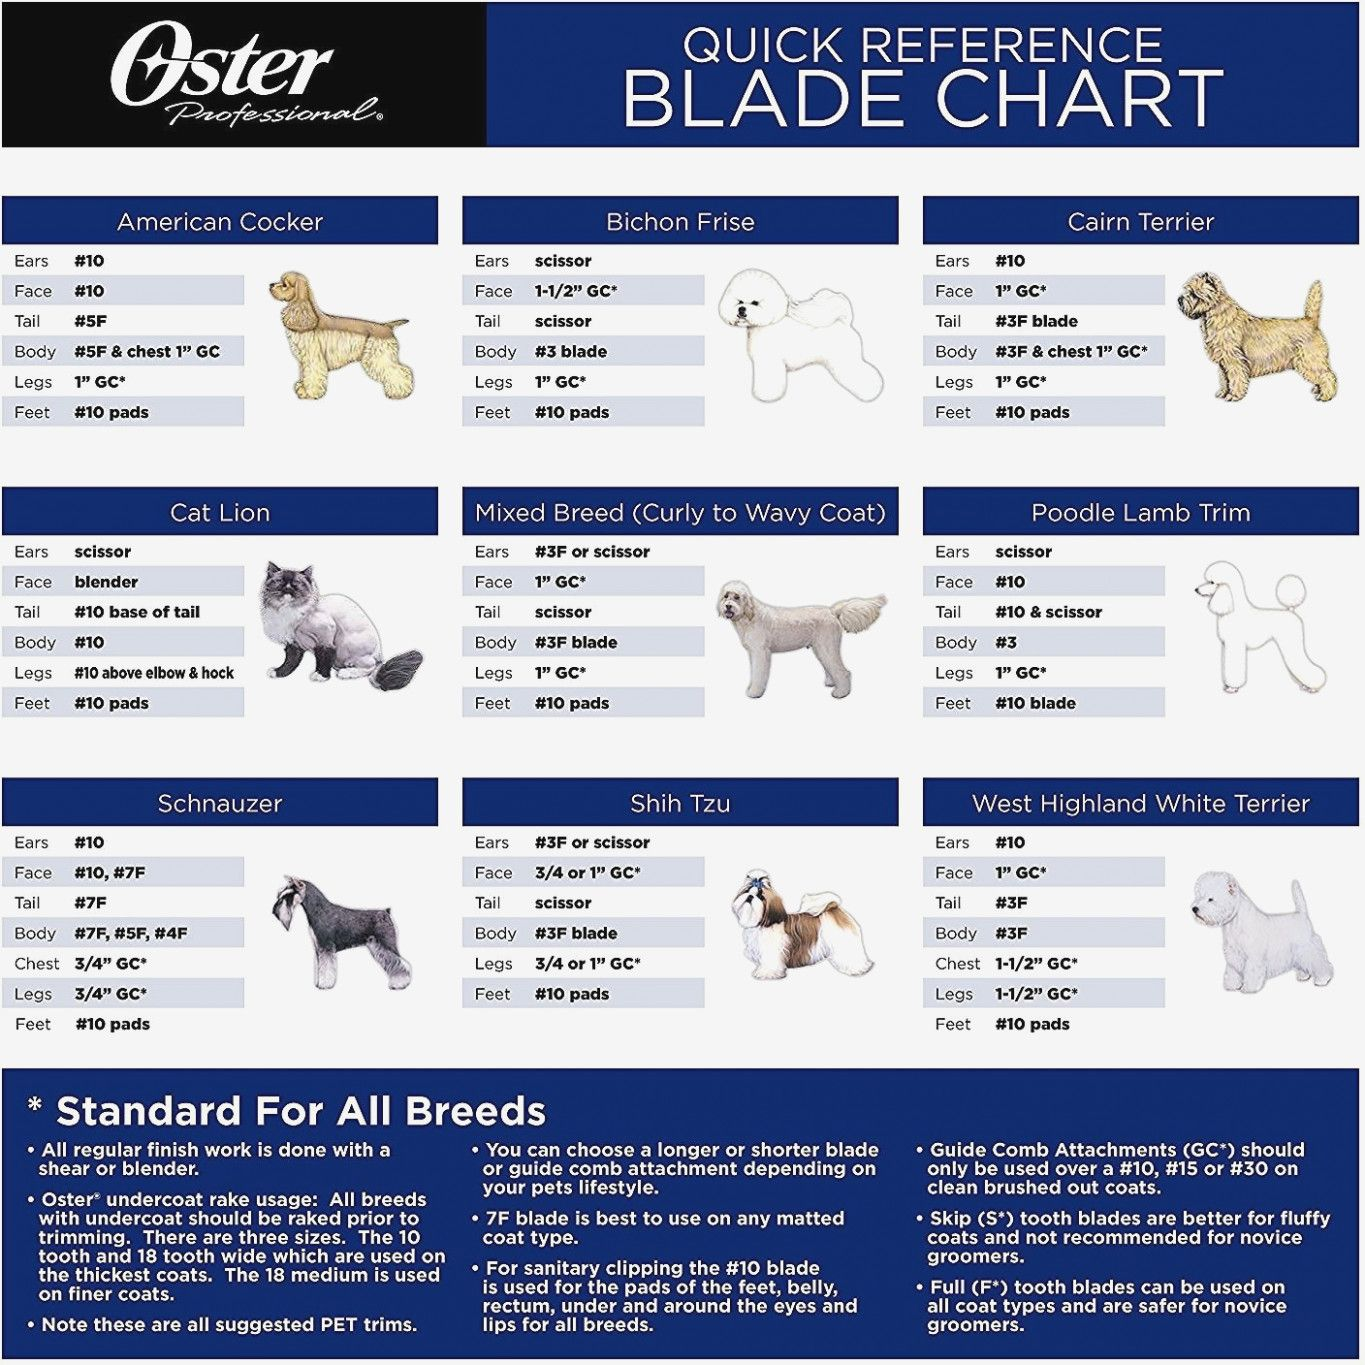 Oster Dog Grooming Blade Chart In 2020 Dog Grooming Clippers Dog Grooming Styles Schnauzer Grooming